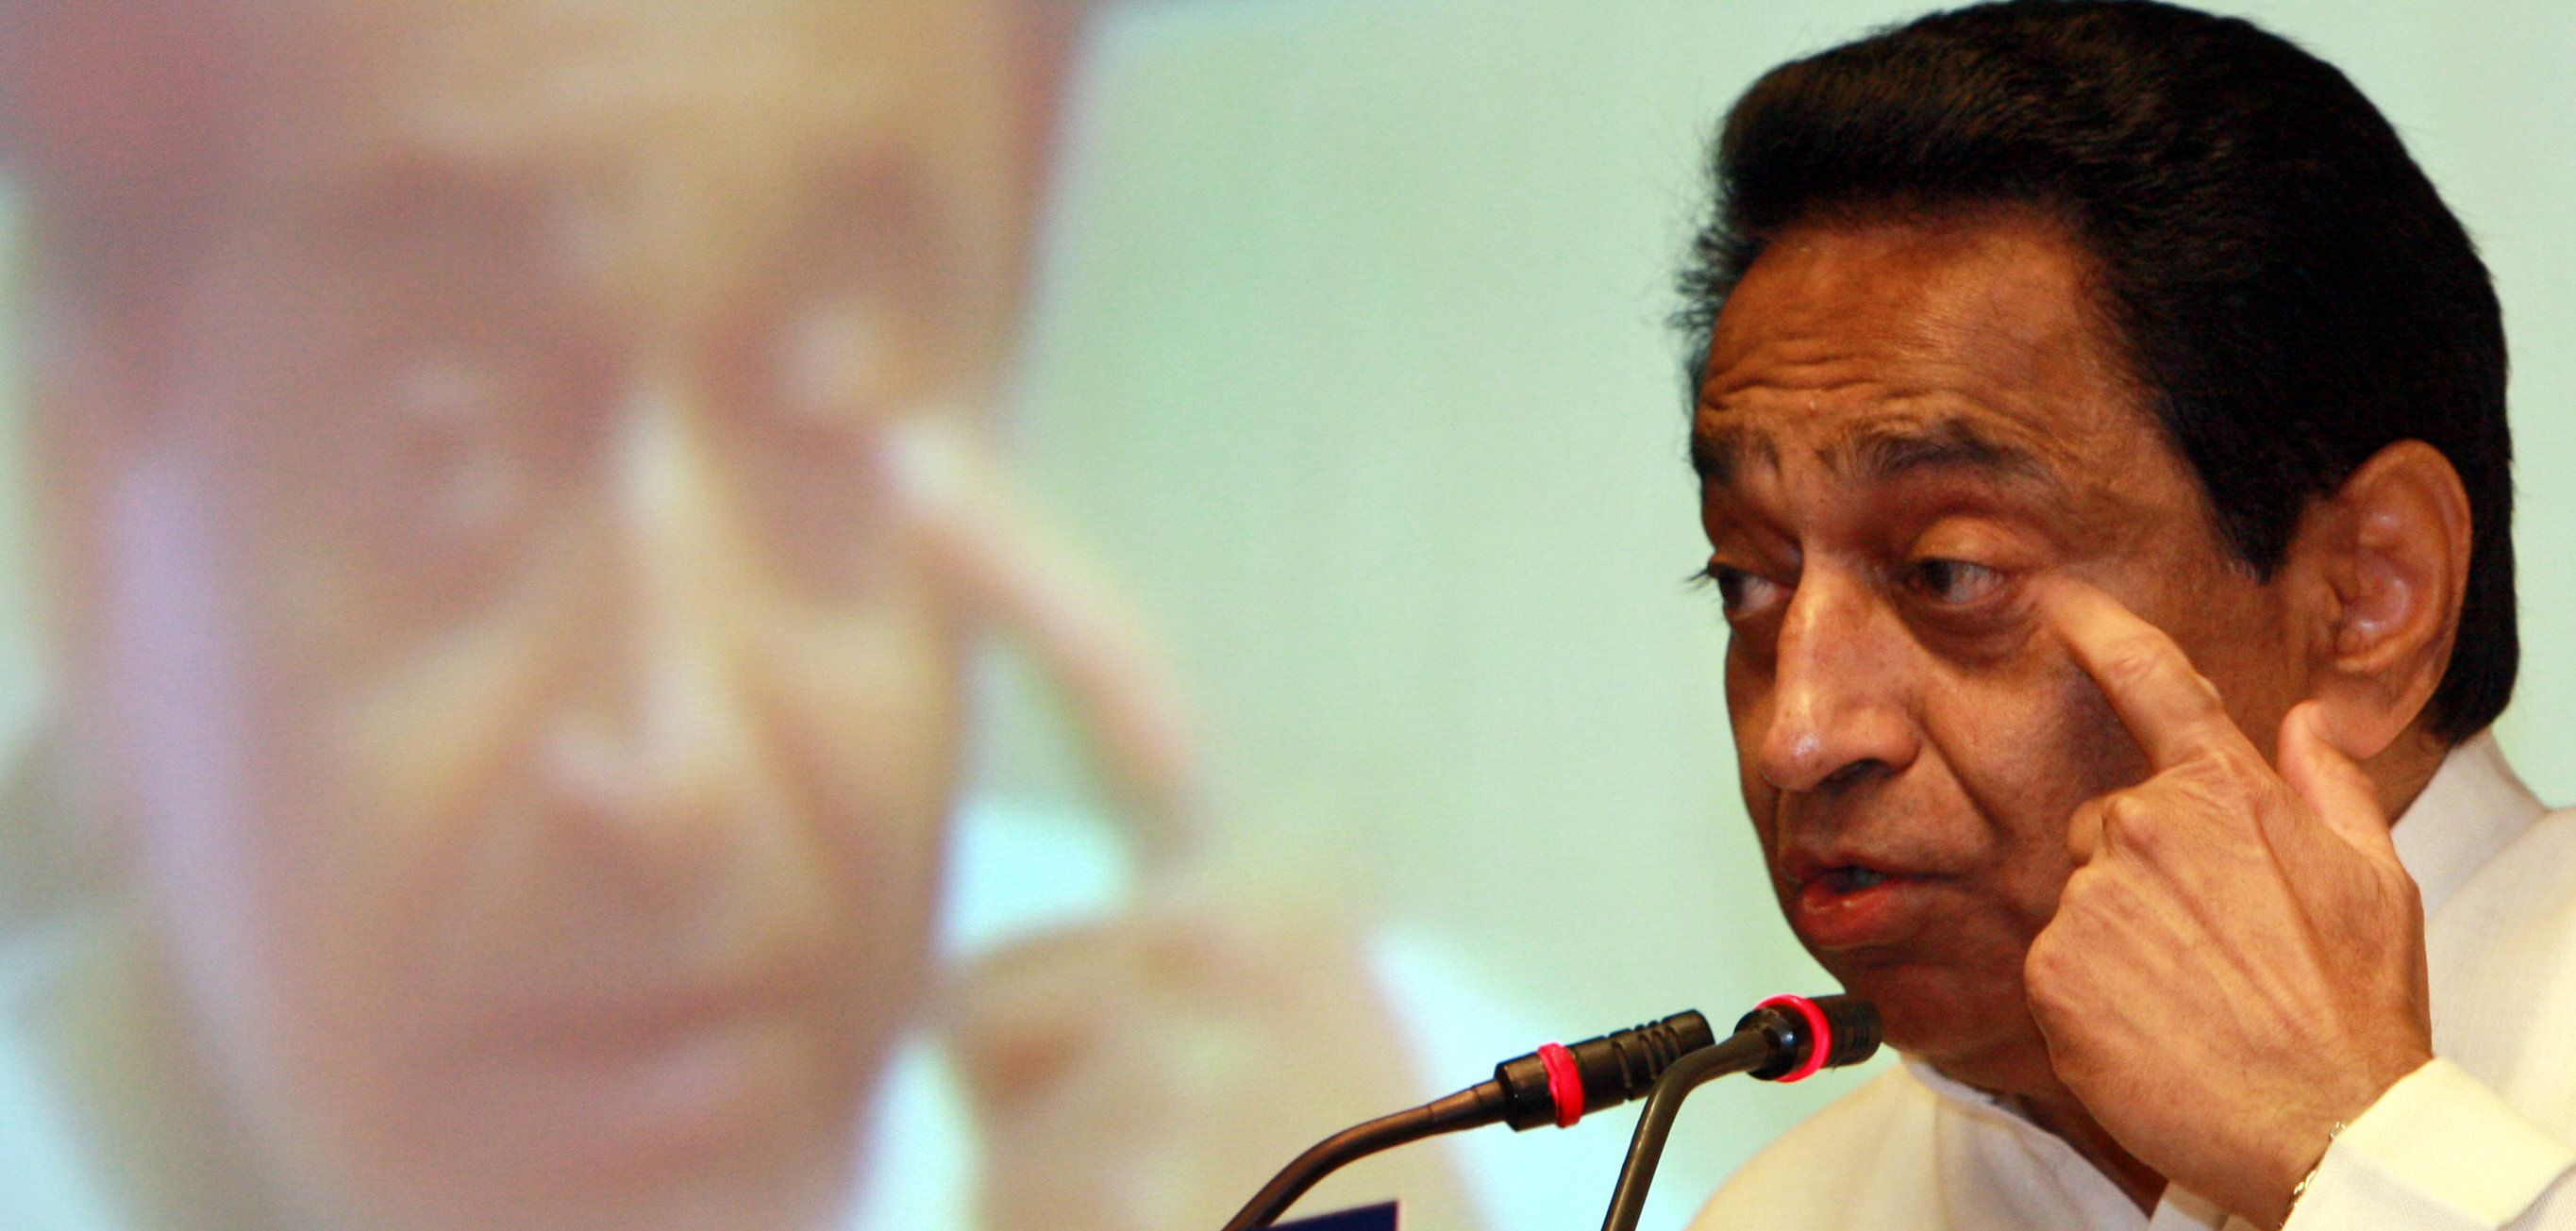 MP Govt Spent Rs 1.58 Cr For Stay Of Kamal Nath, 3 Officers In Switzerland: